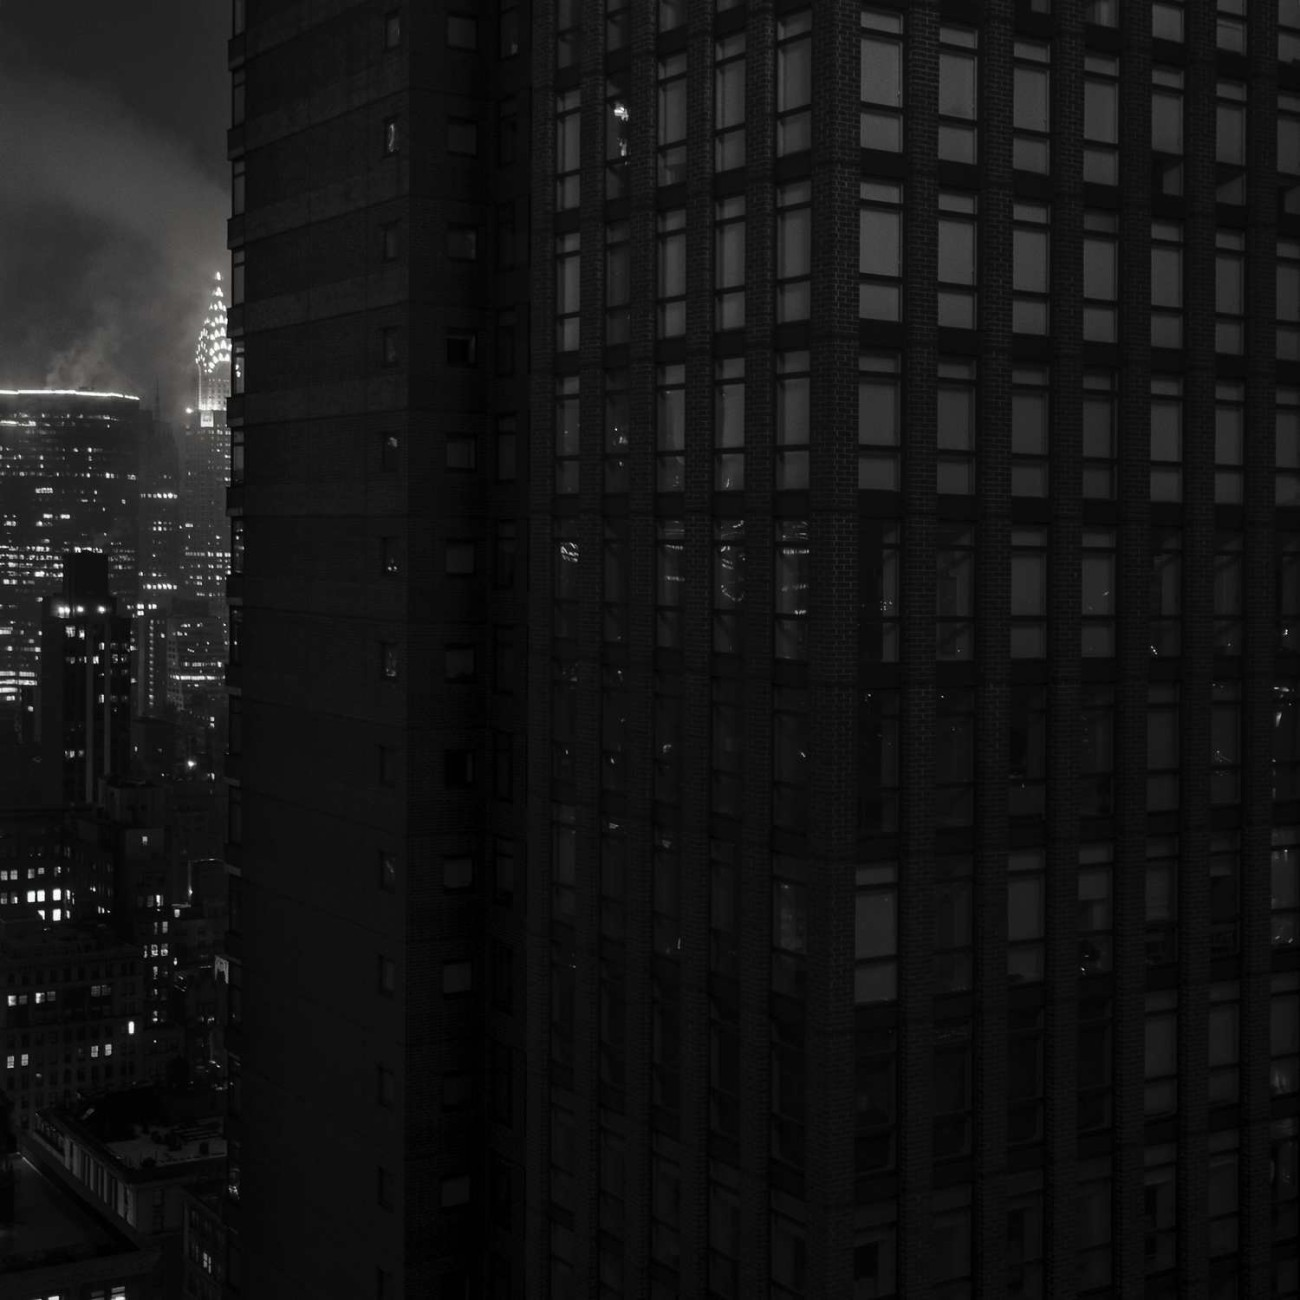 Chrysler Building on a cloudy night, New York, 2014